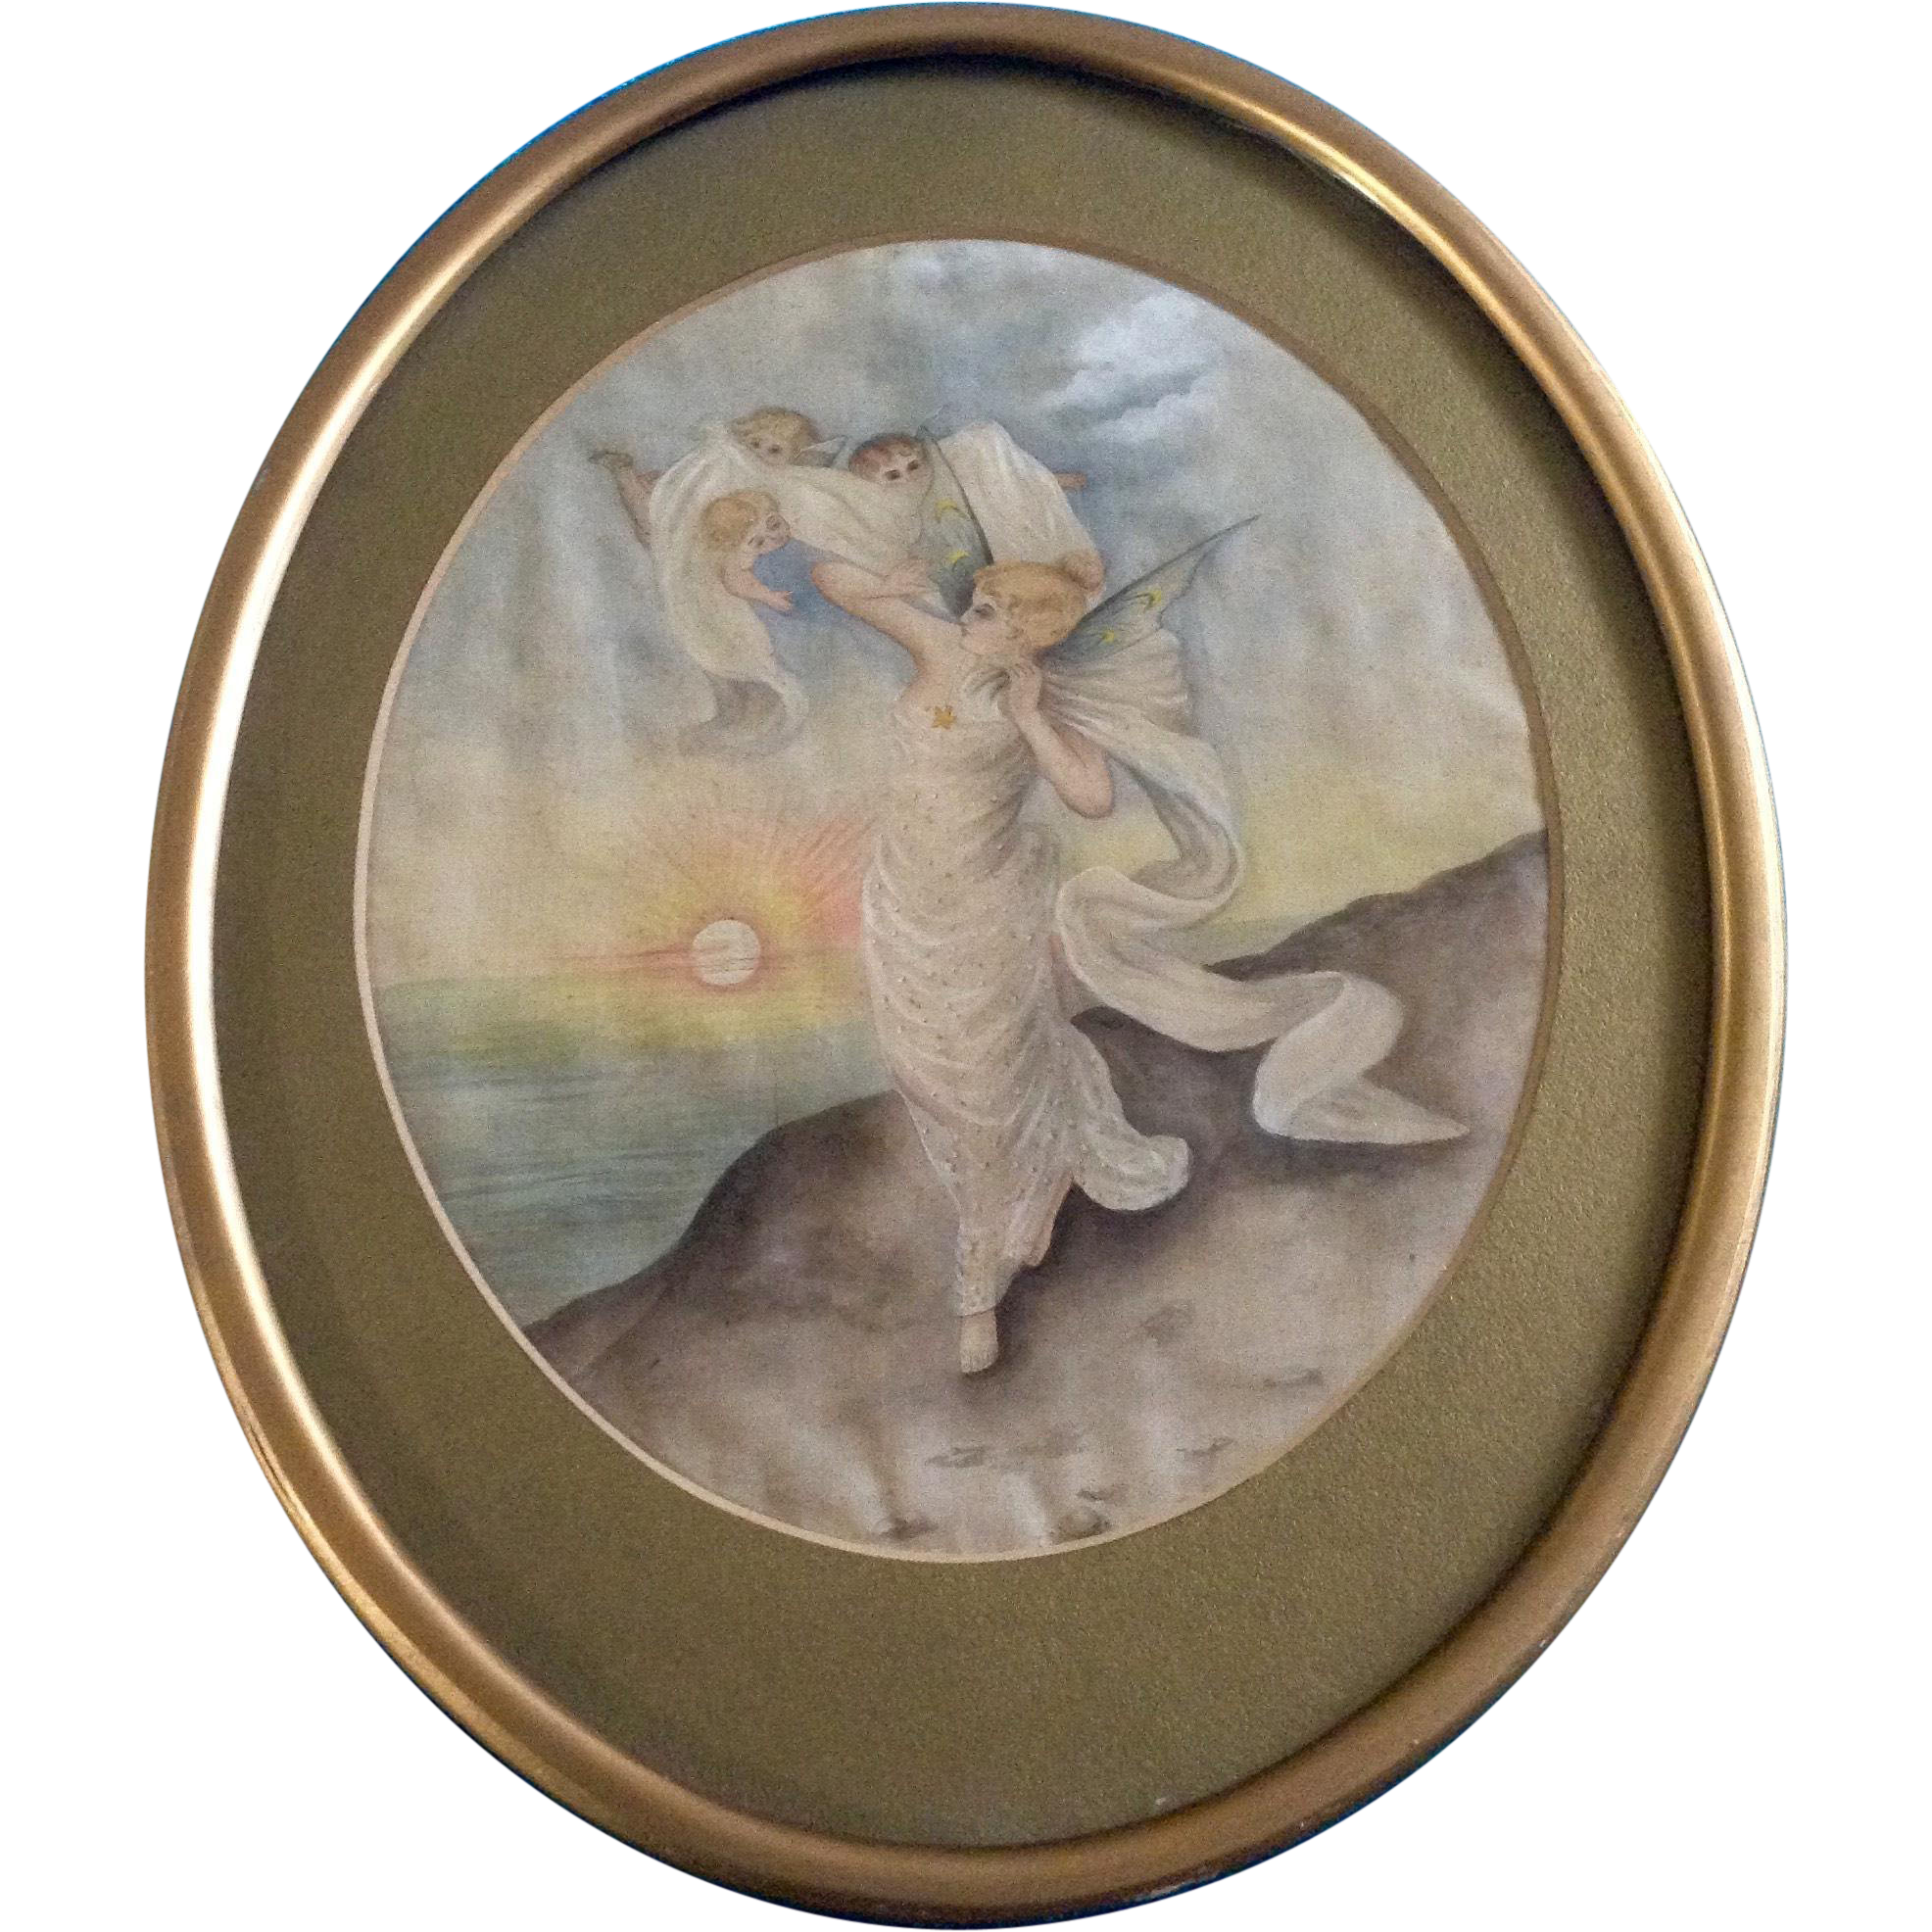 art nouveau painting woman fairy and cherub angels oval frame picture antique painting on silk batic